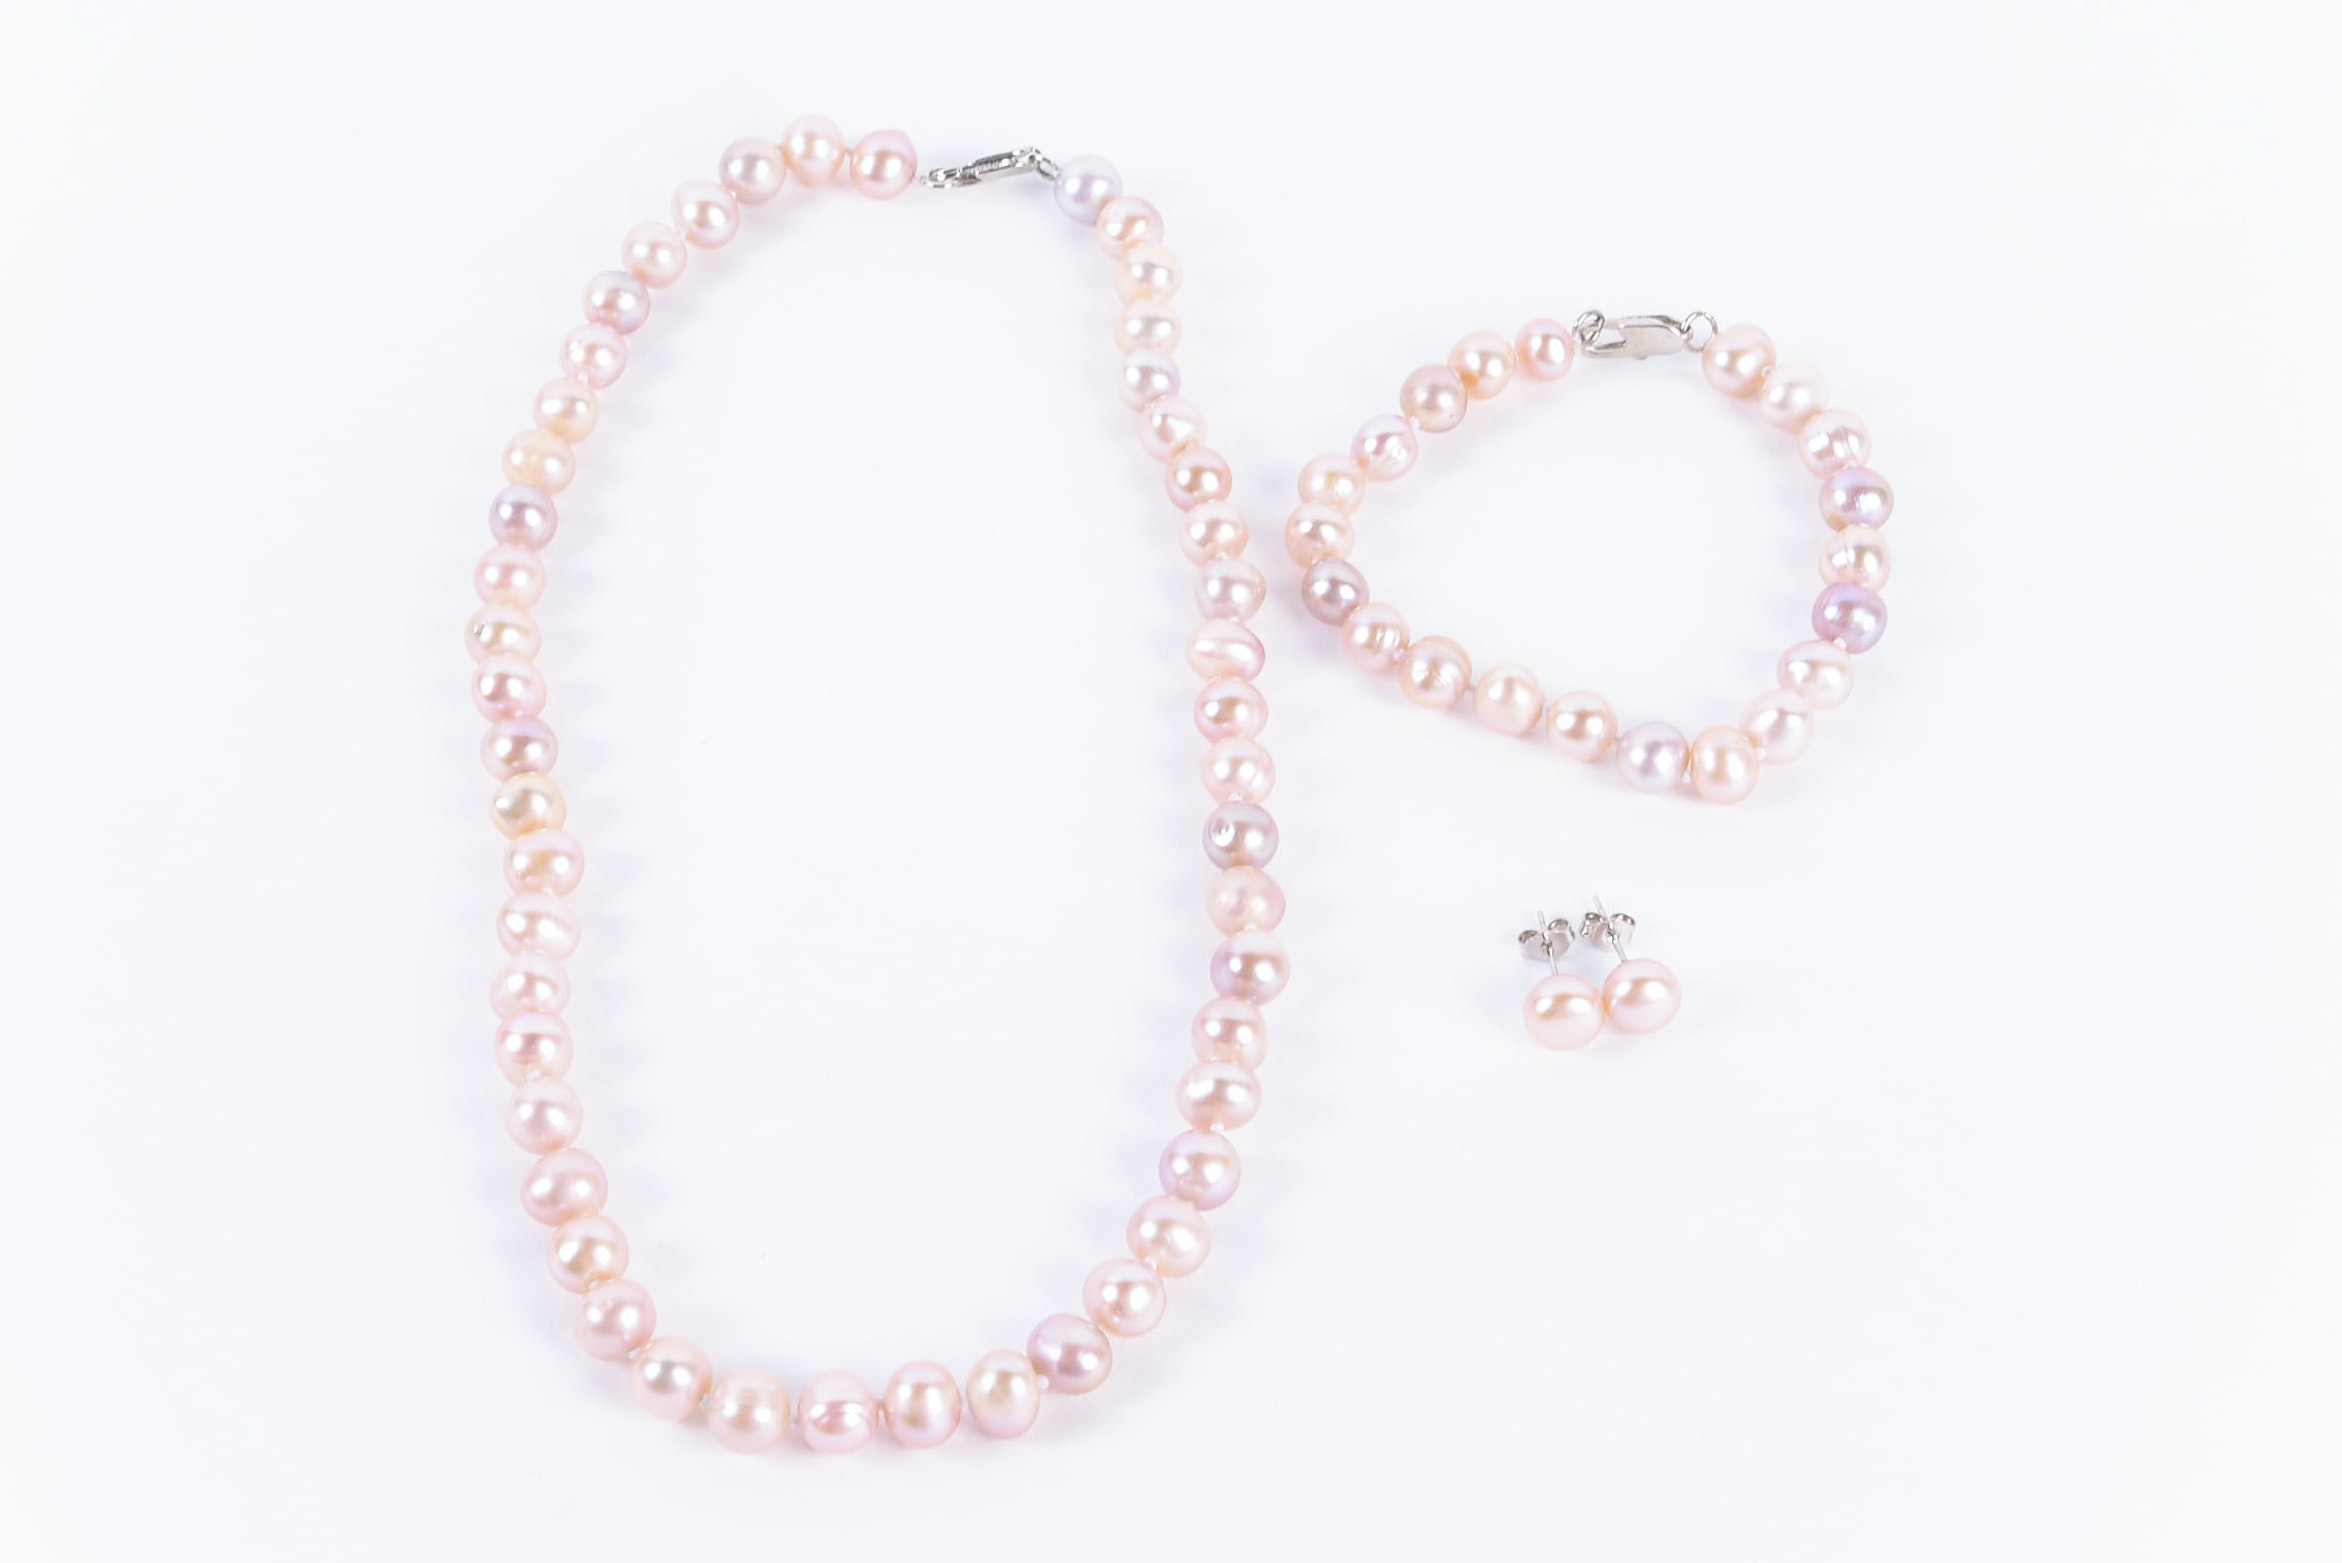 Freshwater Pearl Necklace, Bracelet and Earrings